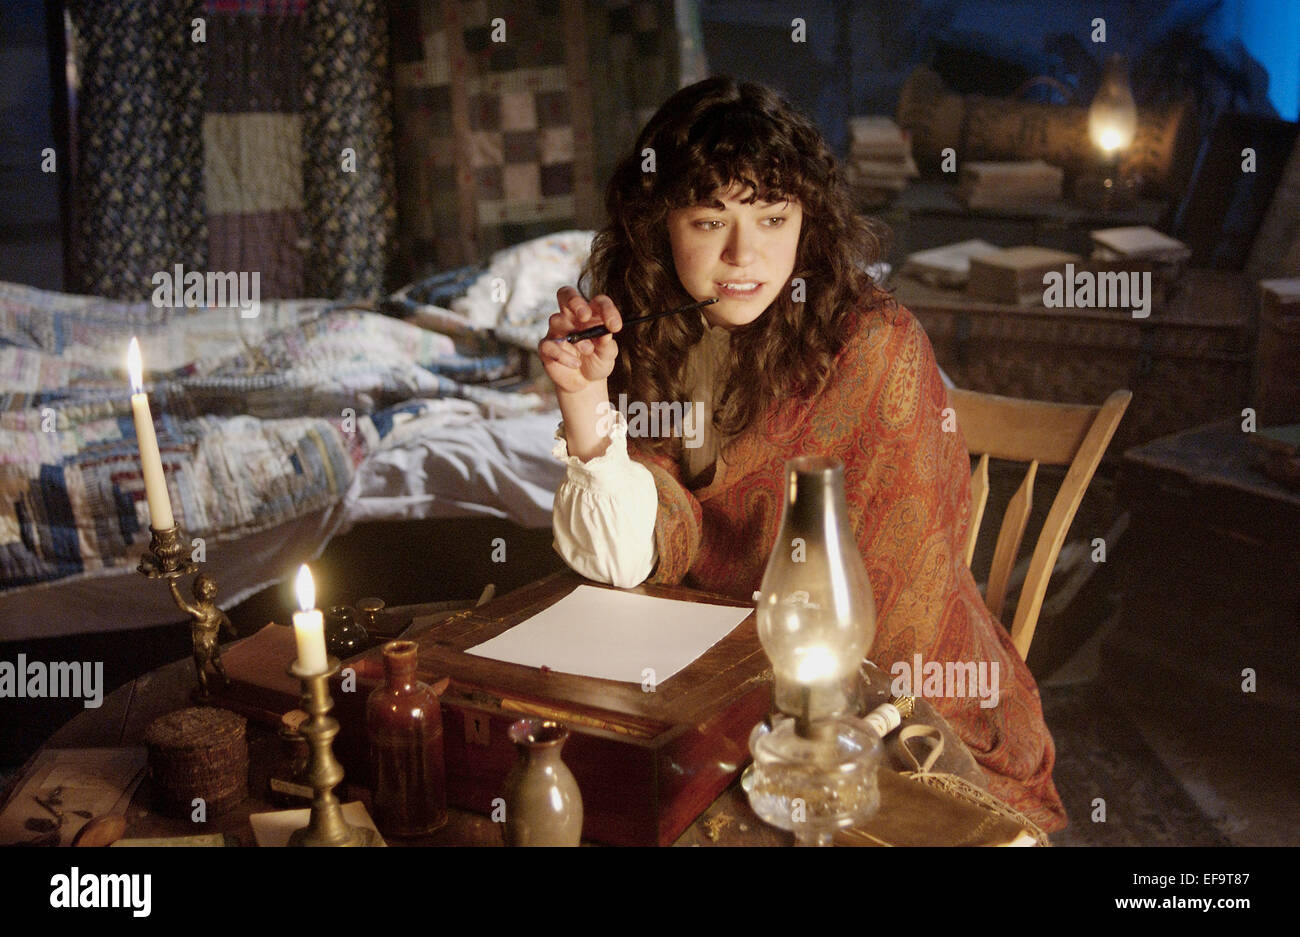 TATIANA MASLANY AN OLD FASHIONED THANKSGIVING (2008) - Stock Image